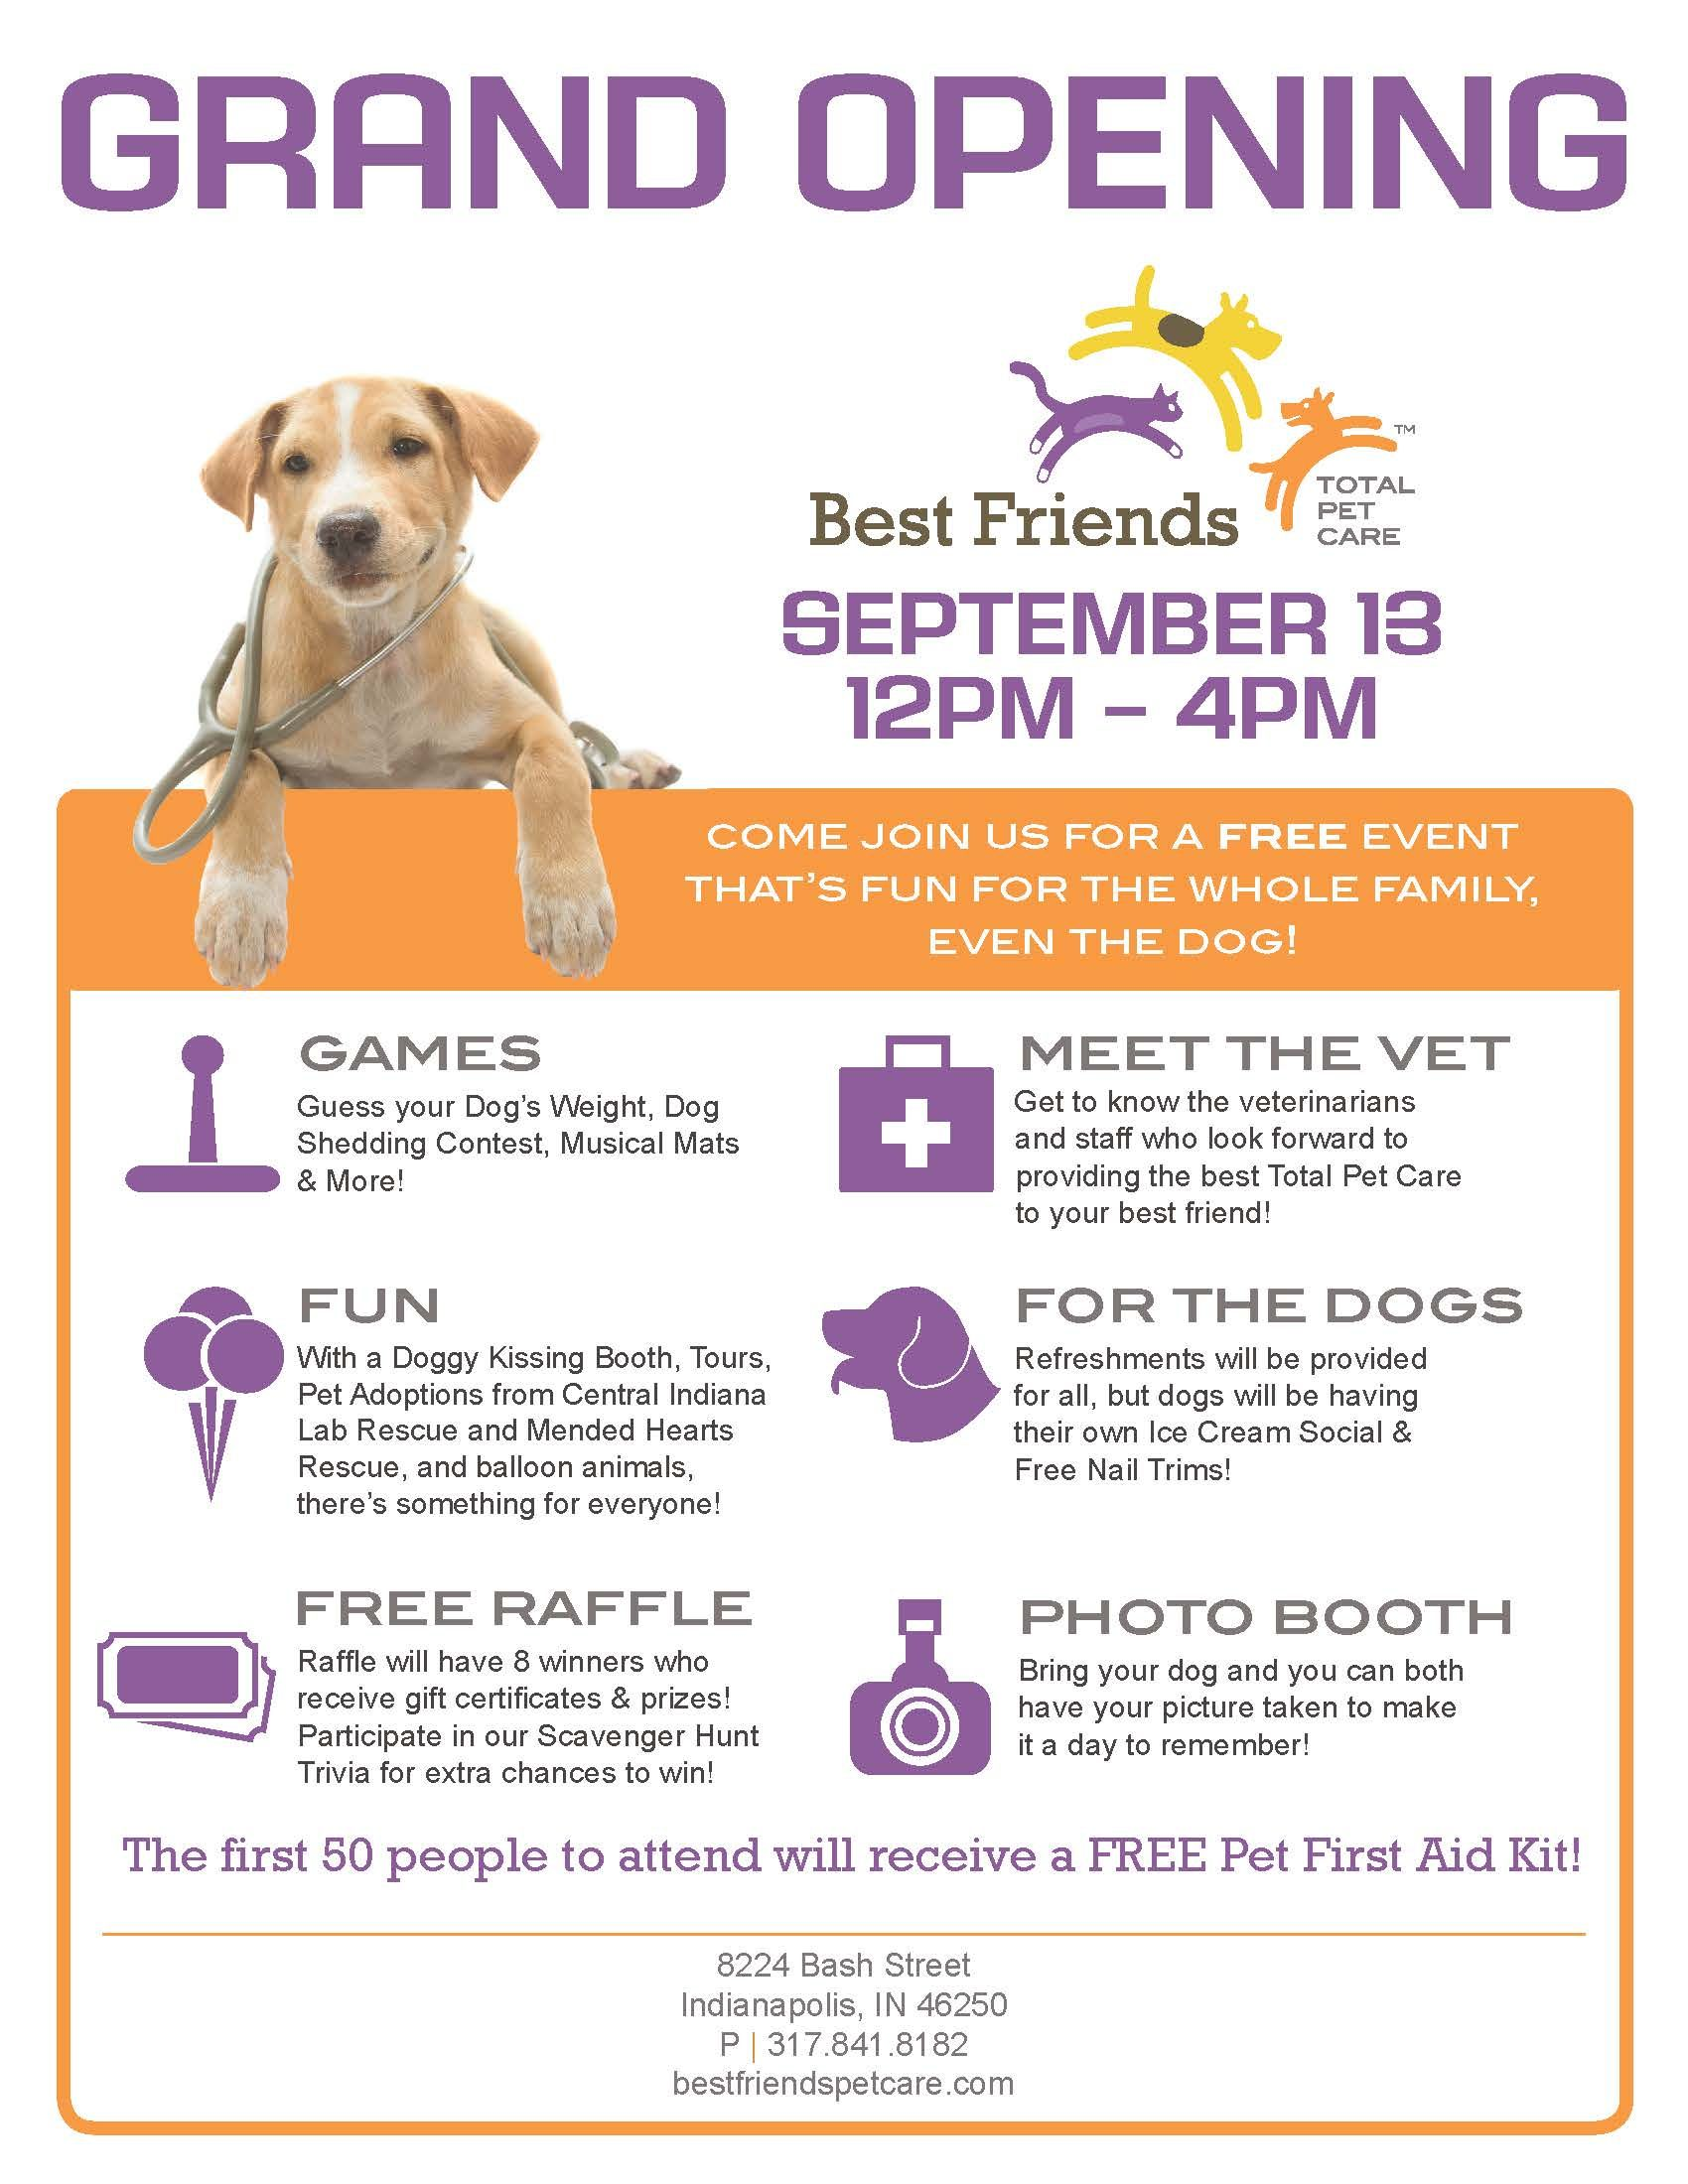 Meet Our Vet At The Best Friends Total Pet Care Grand Opening This